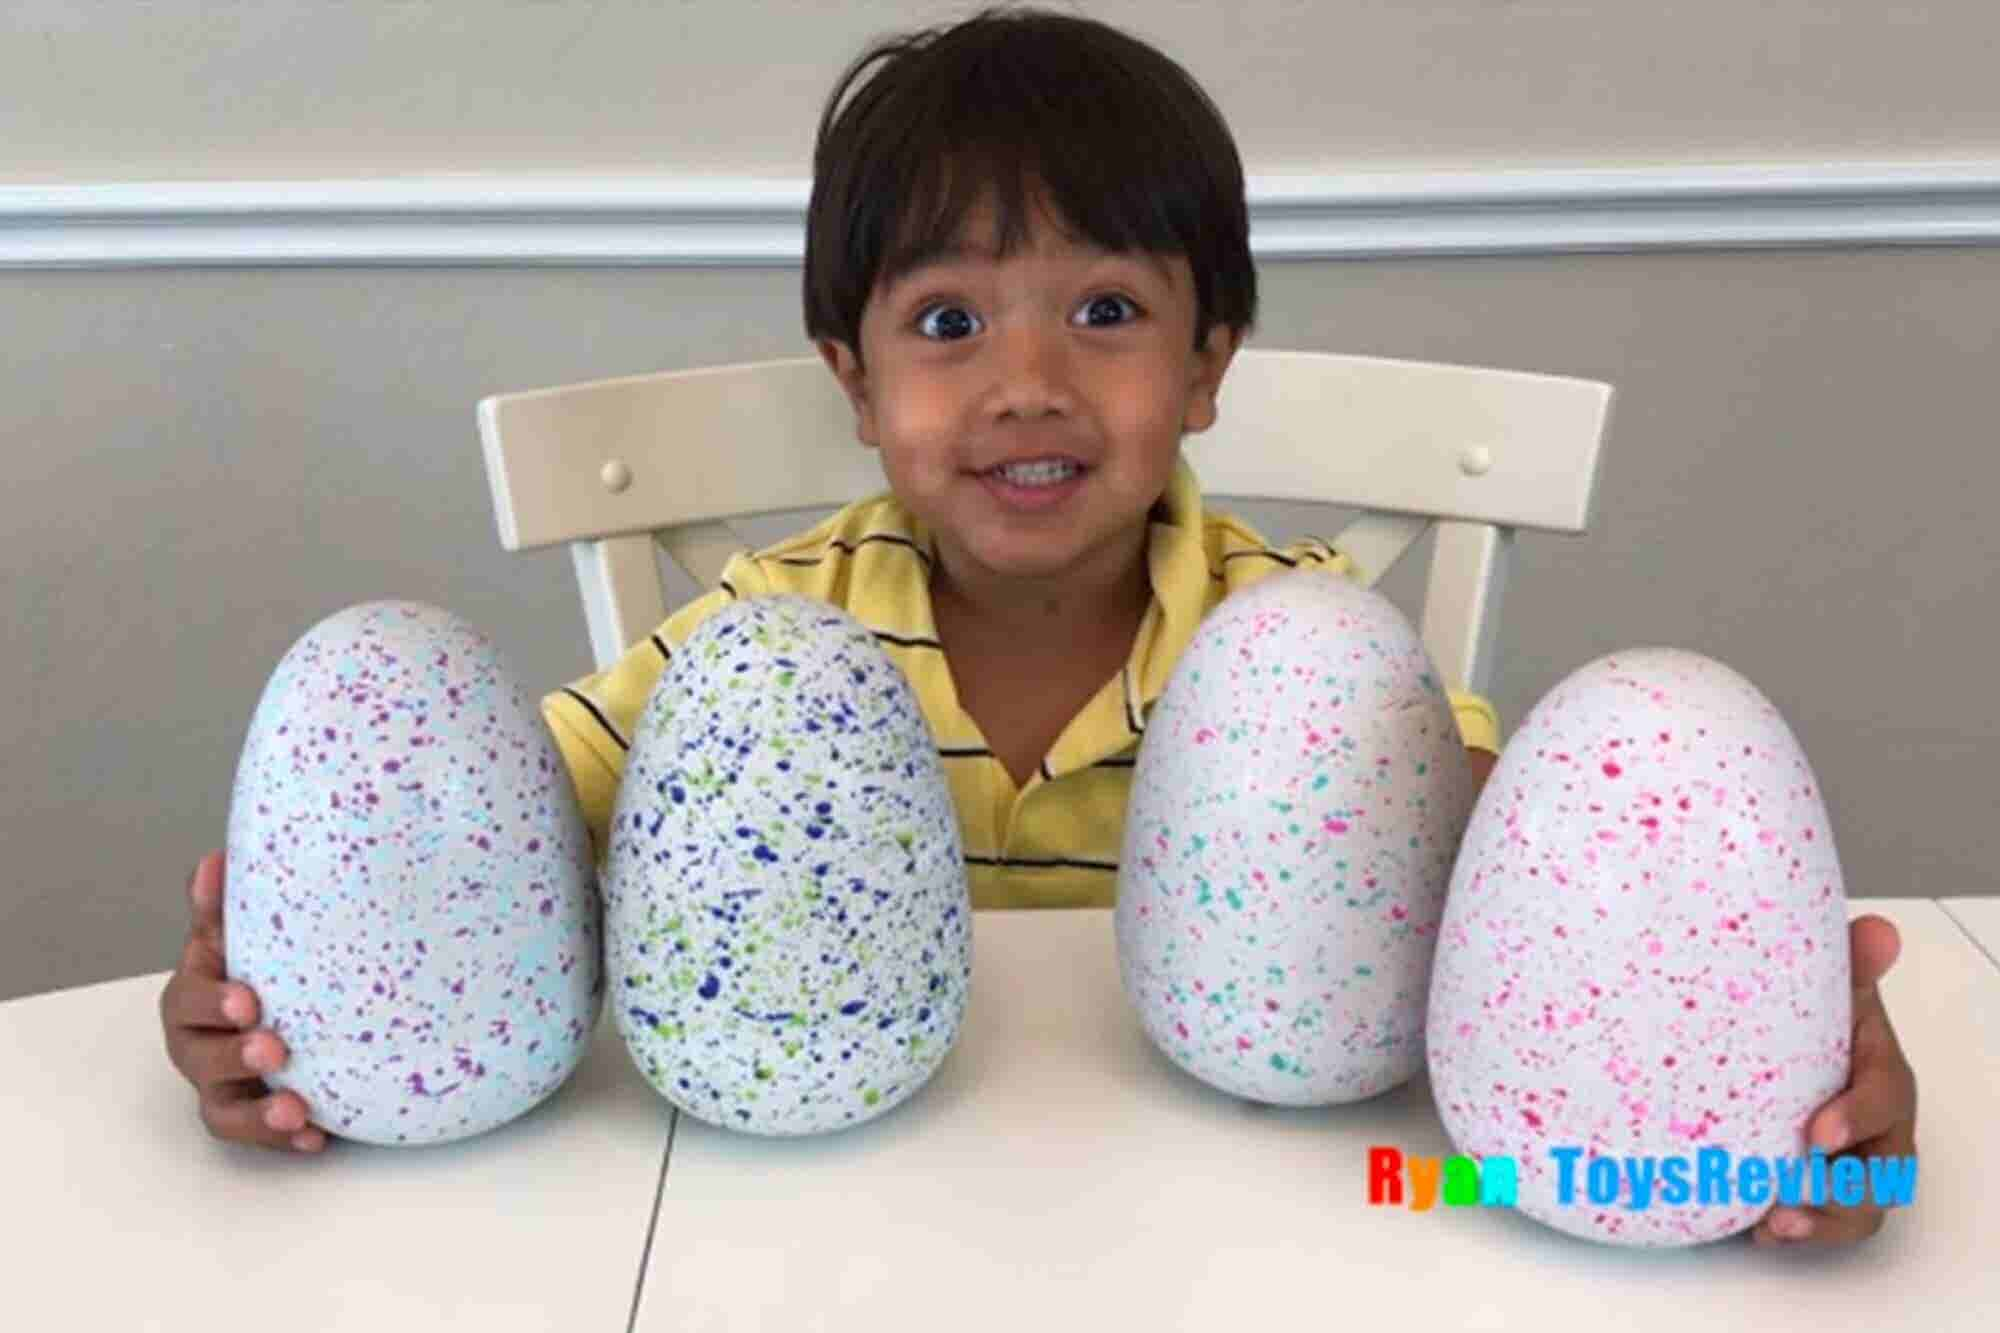 A 7-Year-Old Boy Is Making $22 Million a Year on YouTube Reviewing Toy...